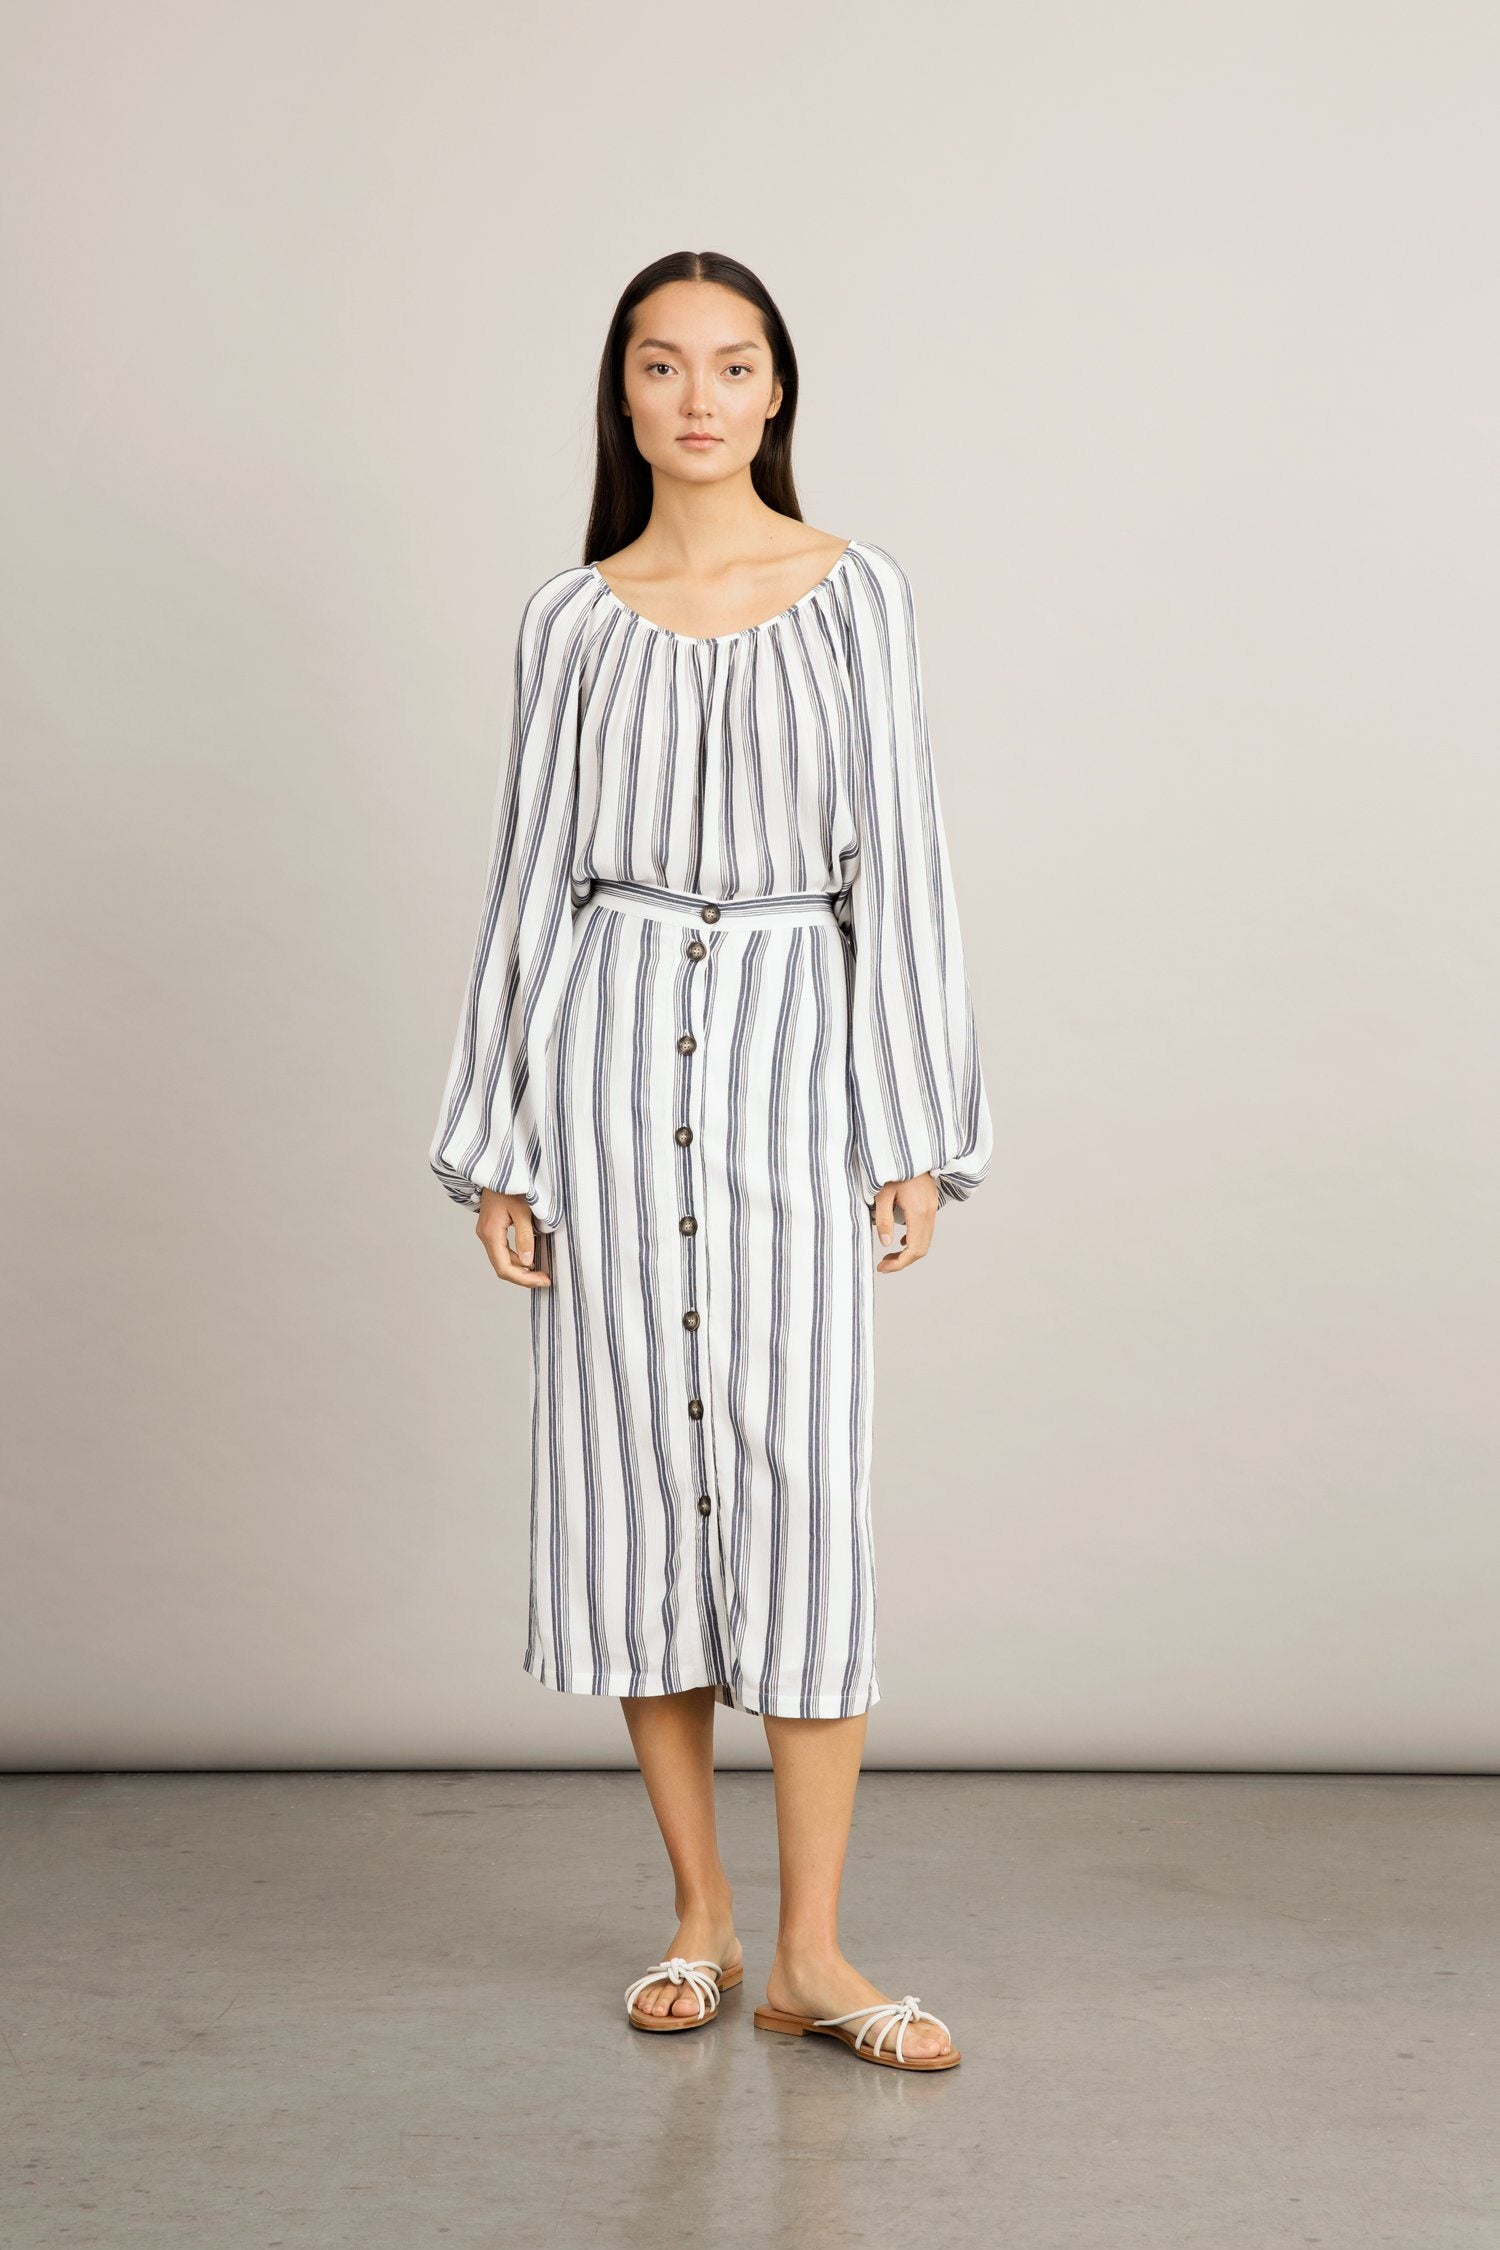 SANSIRA SKIRT - STRIPED Skirt Stylein